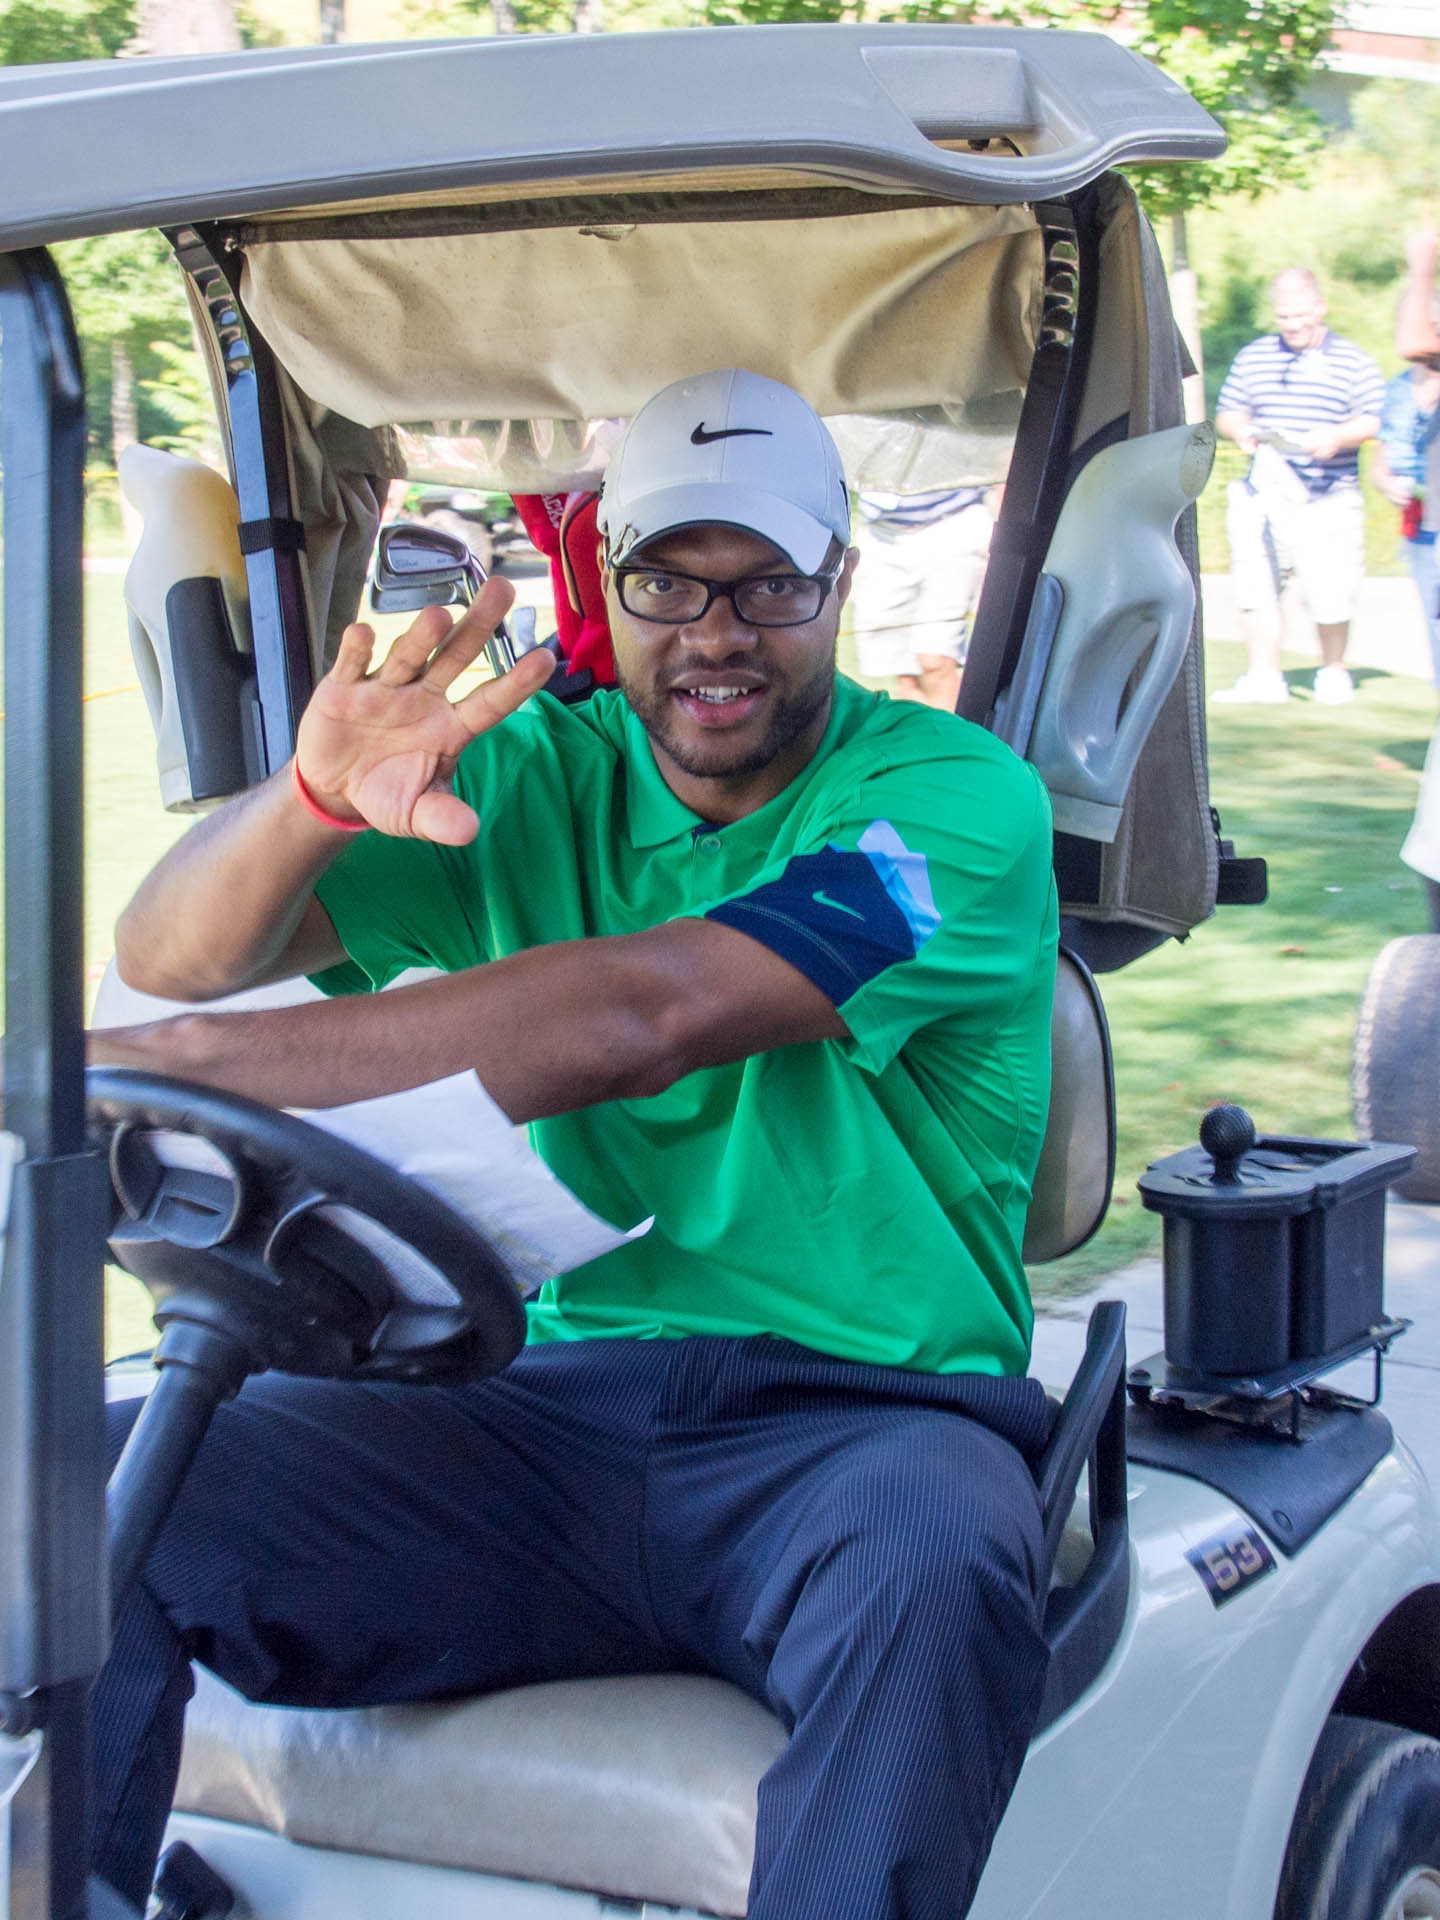 File Torry Holt on his golf cart ccf4803d0